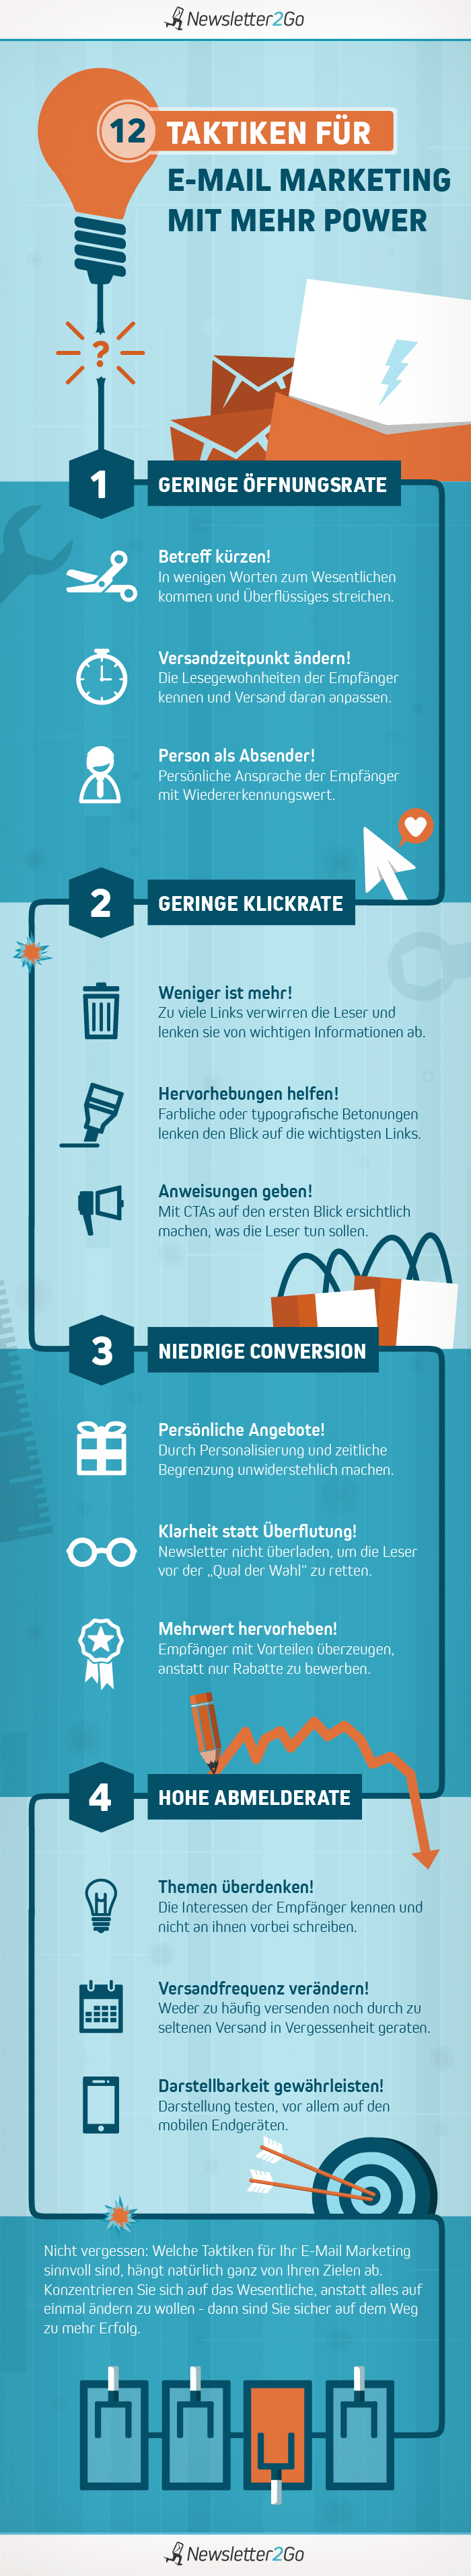 E-Mail Marketing optimieren